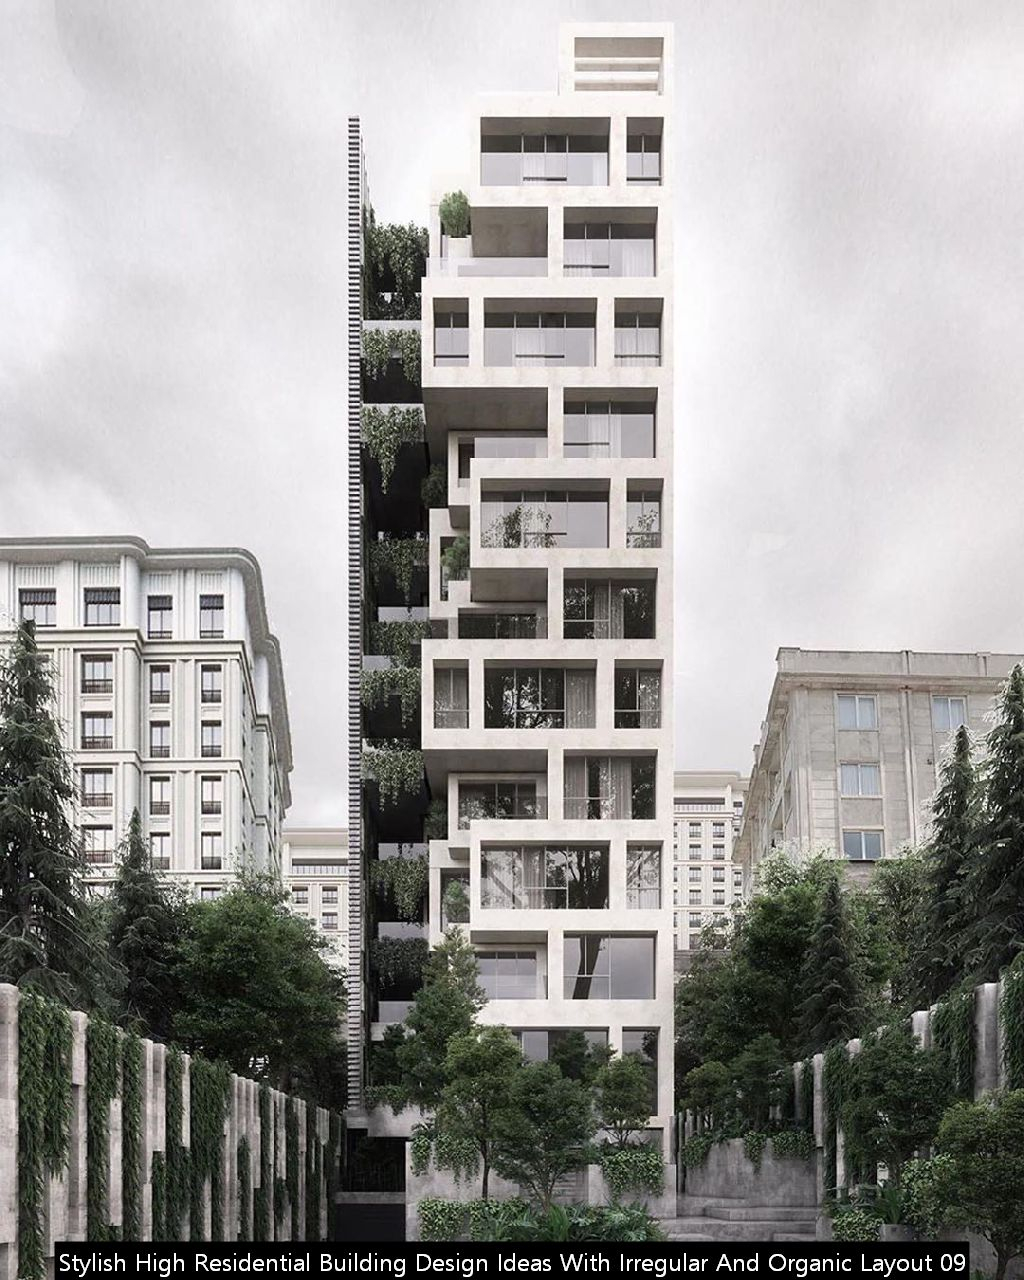 Stylish High Residential Building Design Ideas With Irregular And Organic Layout 09